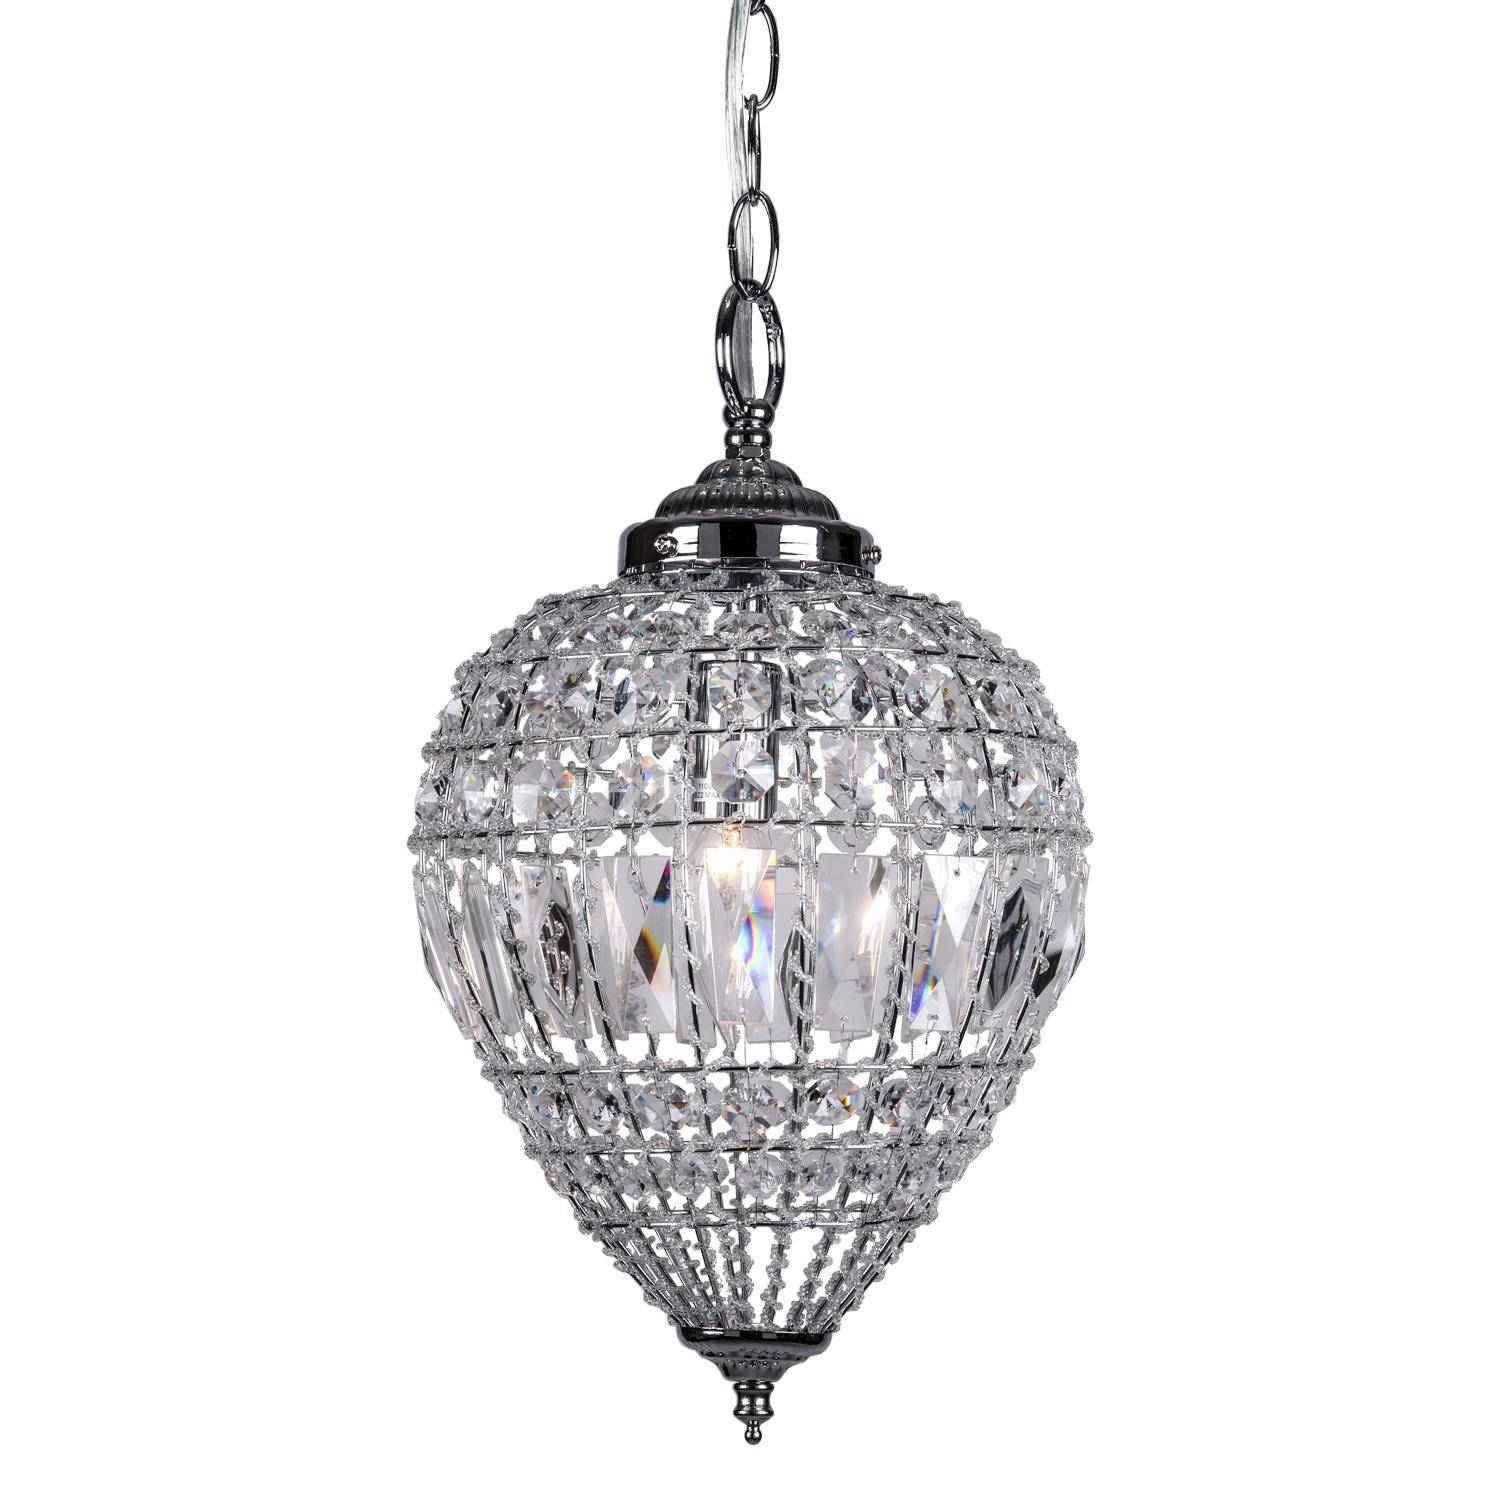 New Crystal Mini Pendant Lighting About Remodel Ceiling Light With regarding Crystal Teardrop Pendant Lights (Image 10 of 15)